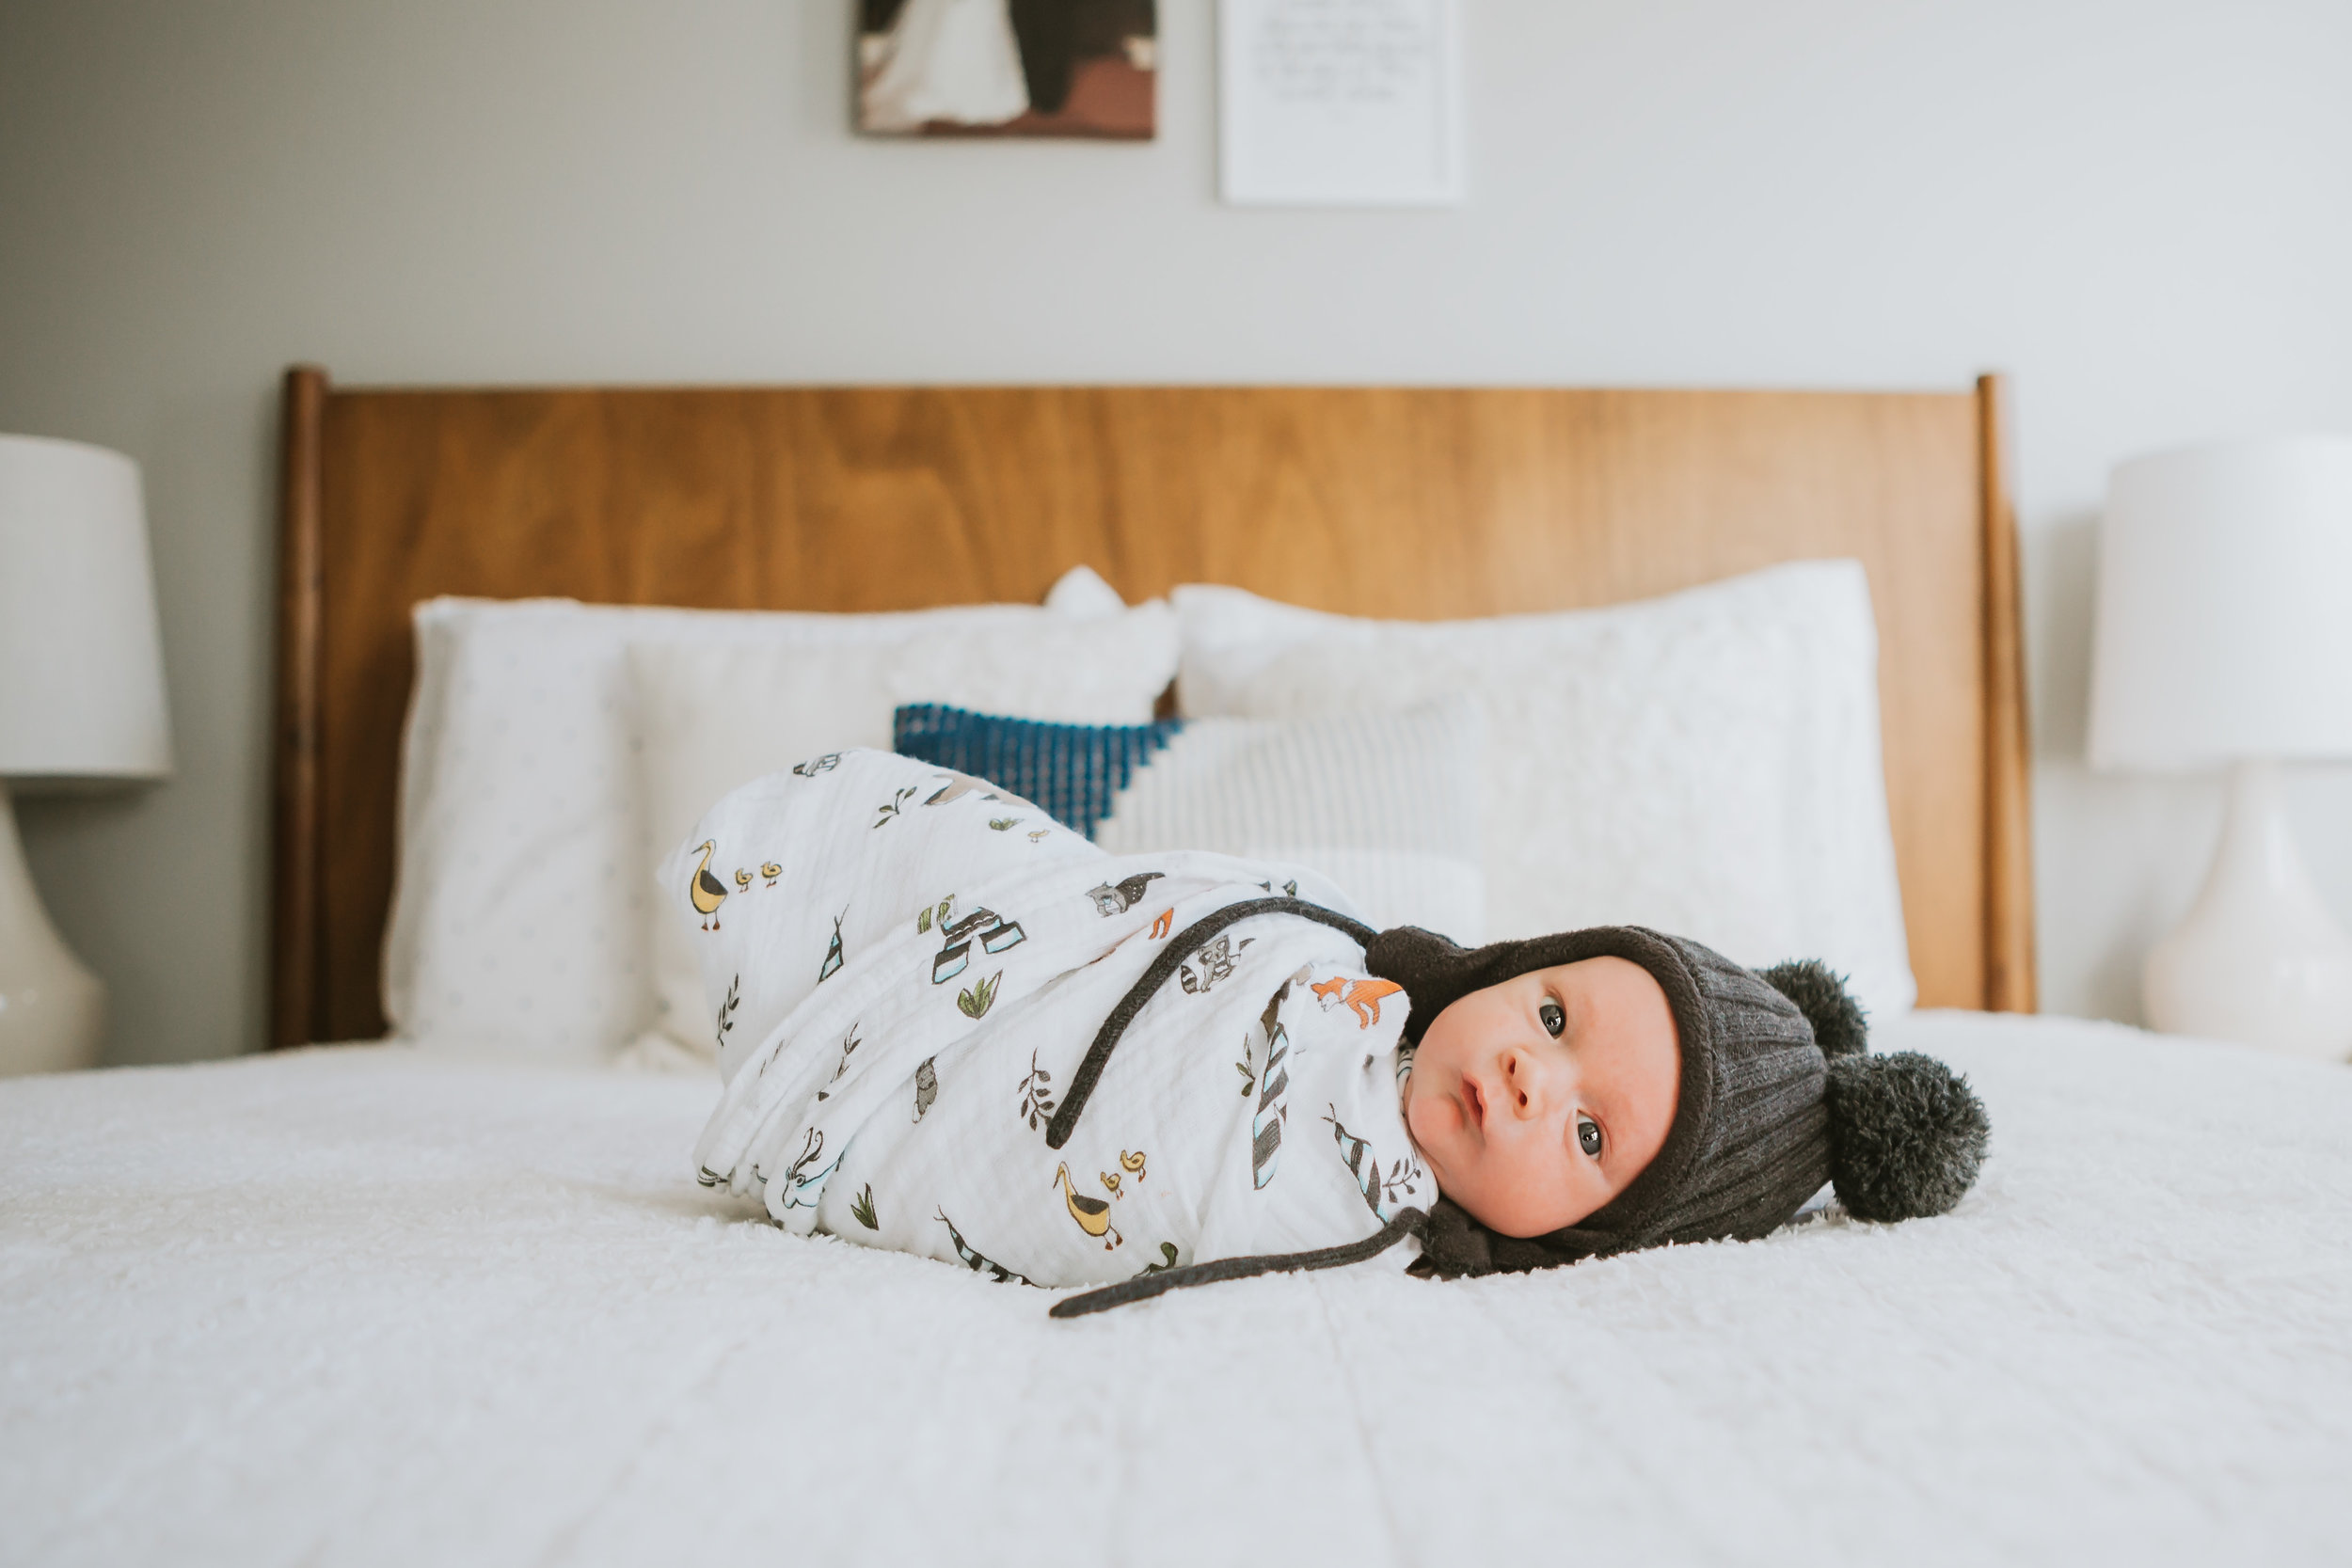 Little one laying on the bed swaddled and warm in a cute hat #tealawardphotography #texasnewbornphotographysession #amarillophotographer #amarilloenewbornphotographer #emotionalphotography #lifestylephotography #inhomesession #lifestyles #newbaby #newfamilyofthree #sweetbaby #nurseryphotos